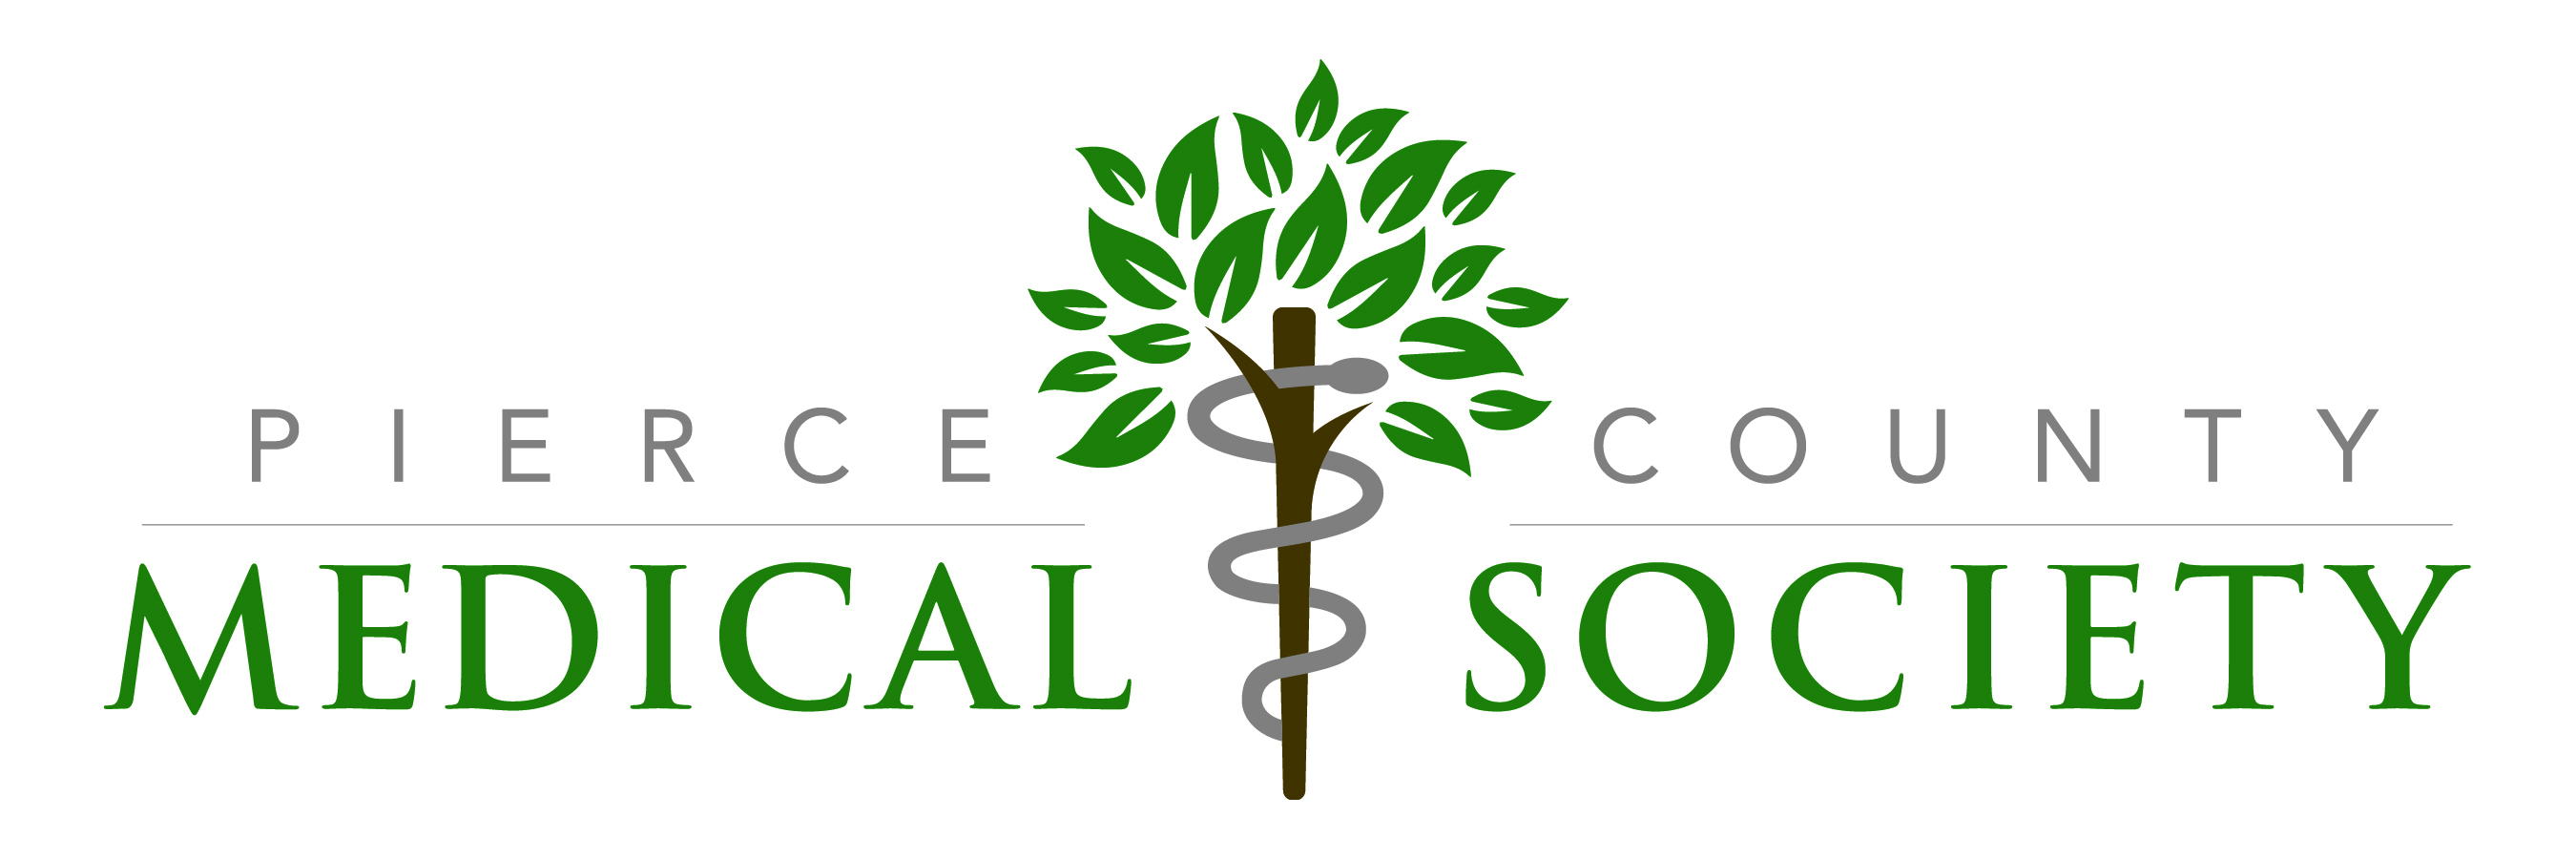 Pierce County Medical Society Logo